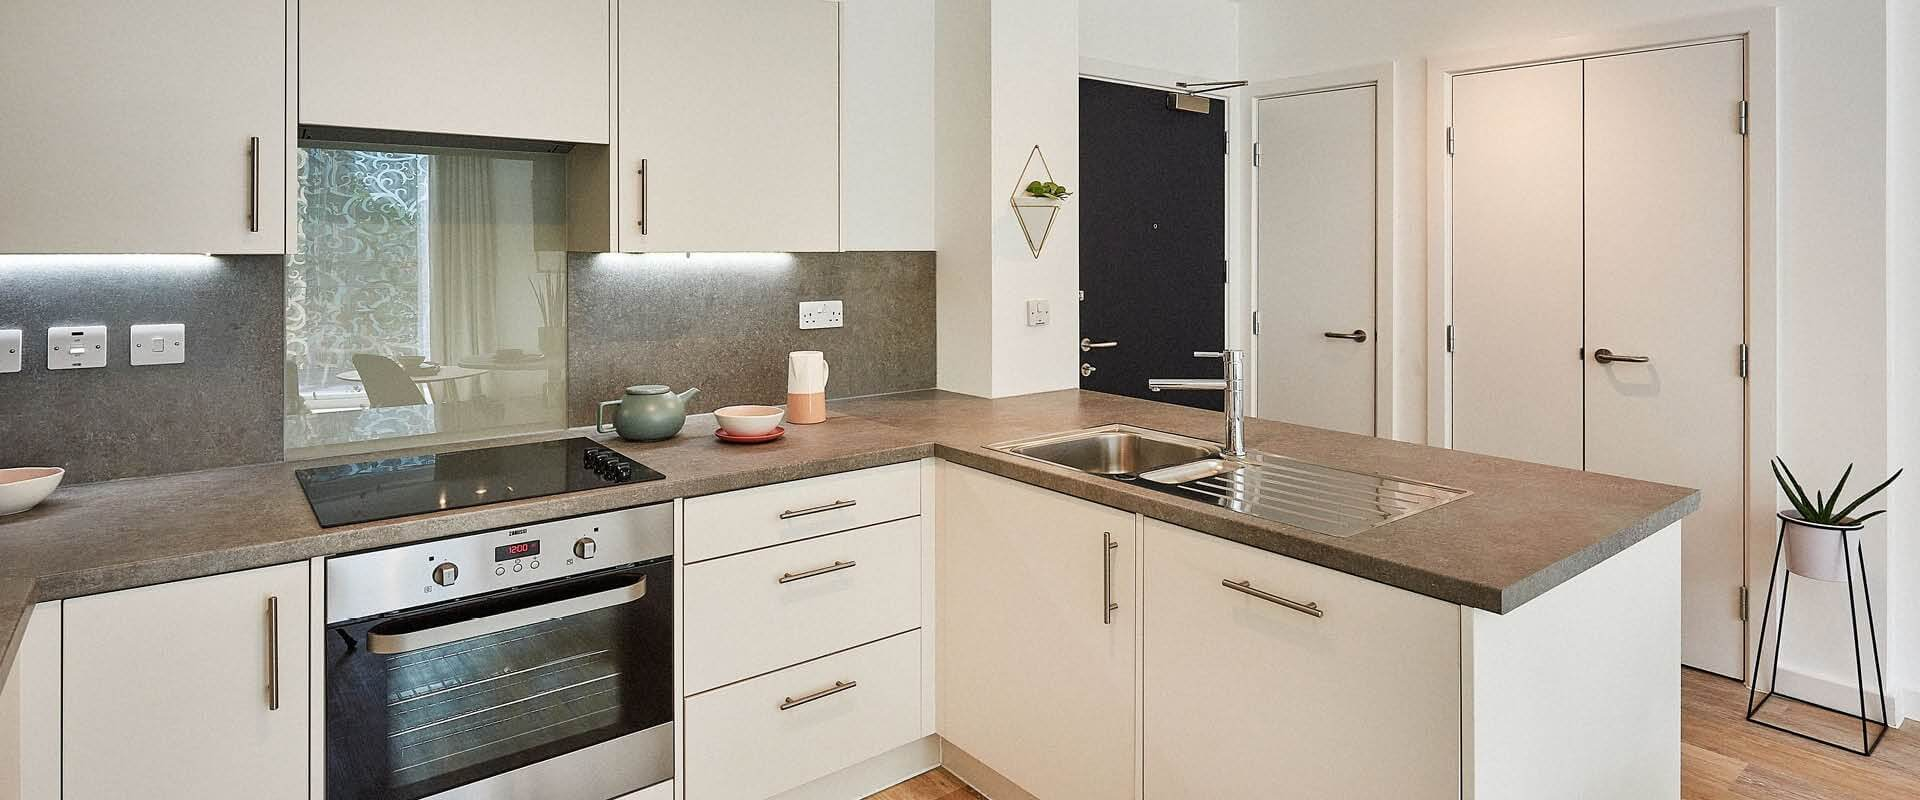 Way of Life - The Wullcomb, Leicester - Two bedroom Apartment Kitchen